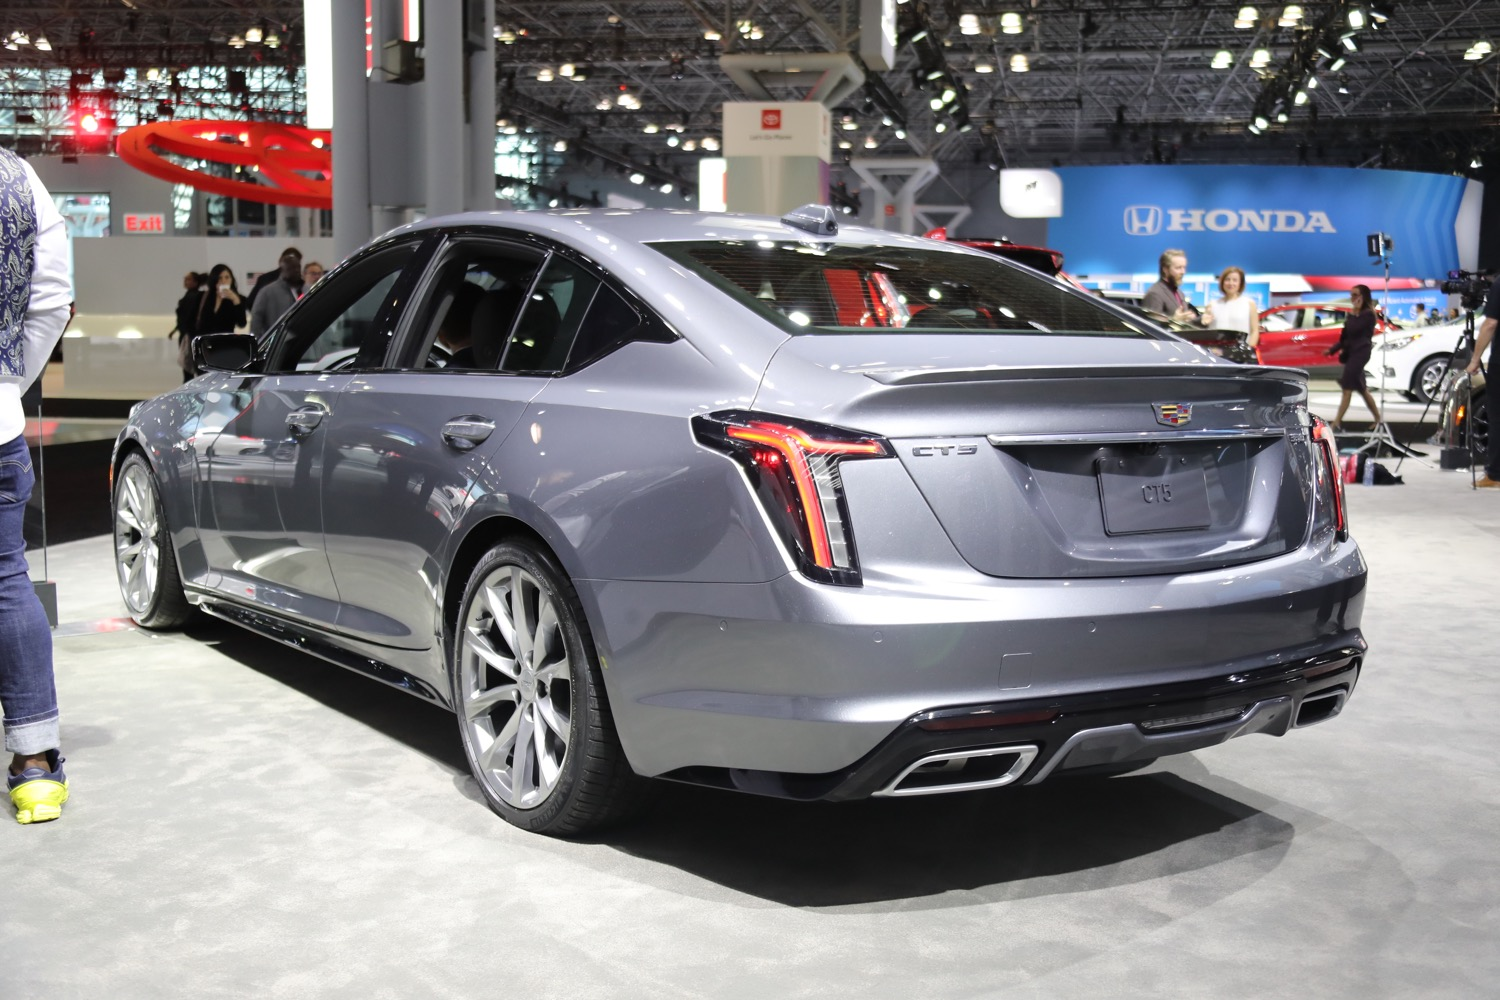 2020 cadillac ct5 pictures, photos, images, spy shots